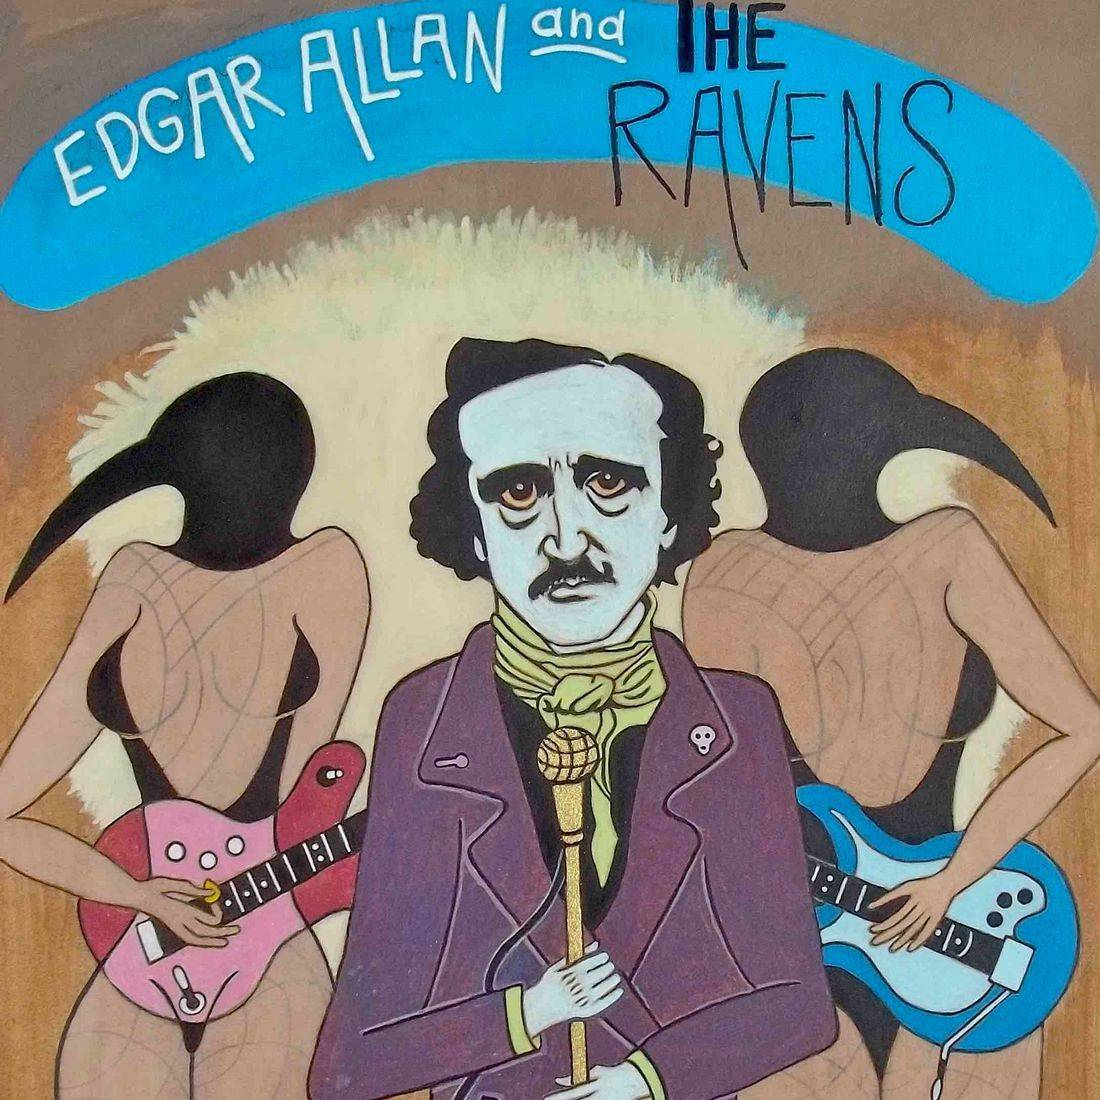 Edgar Allan Poe, Ravens, Musical Groups, Contemporary Art, Lizard Lounge, Electric Guitar, Pop Art